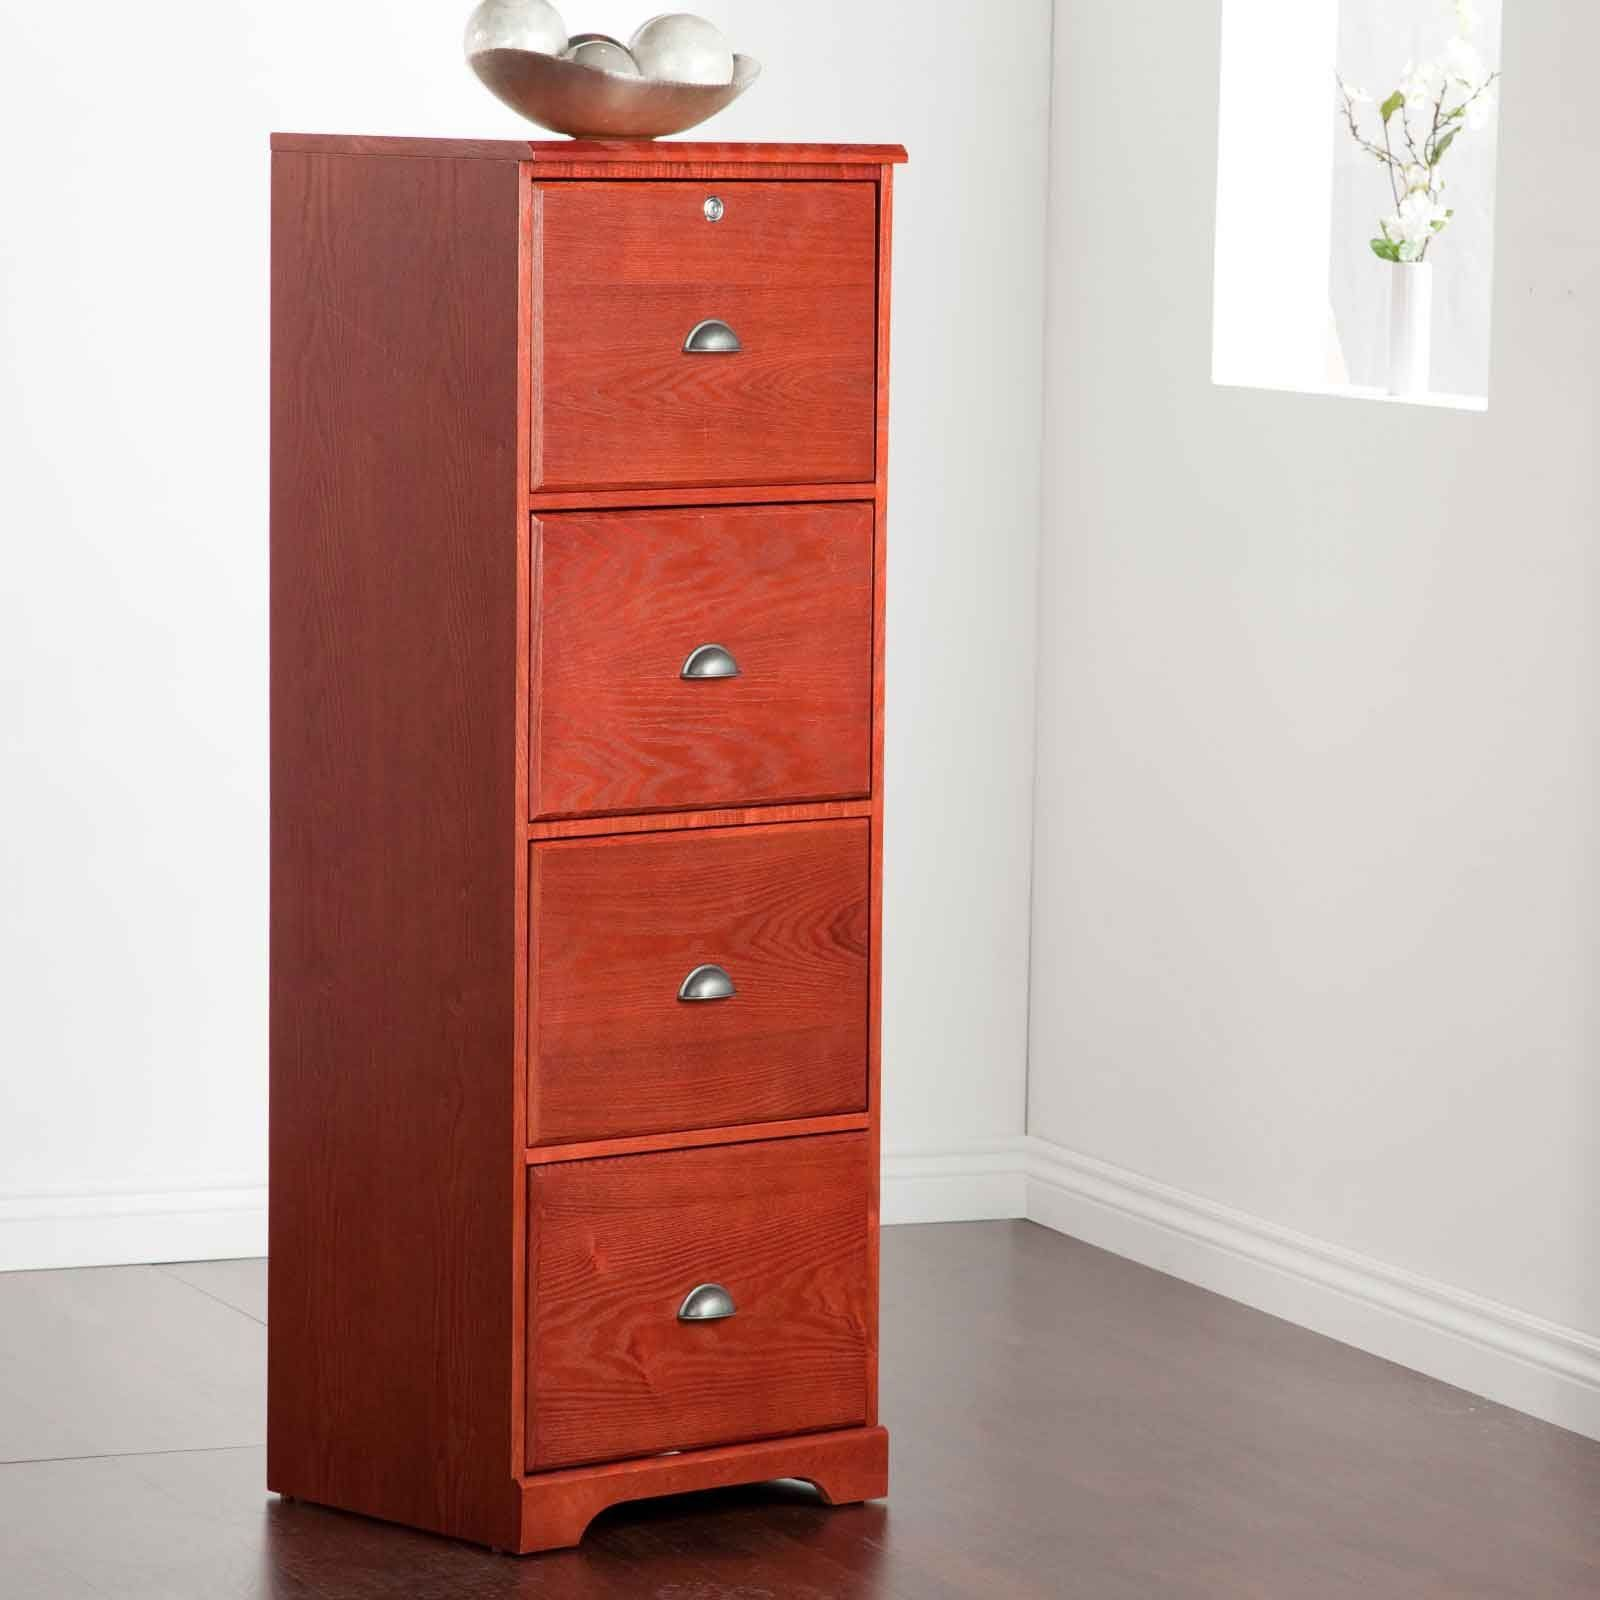 vertical wood file cabinets 4 drawer filing cabinet liquor cabinet furniture office on kitchen cabinets vertical lines id=30750